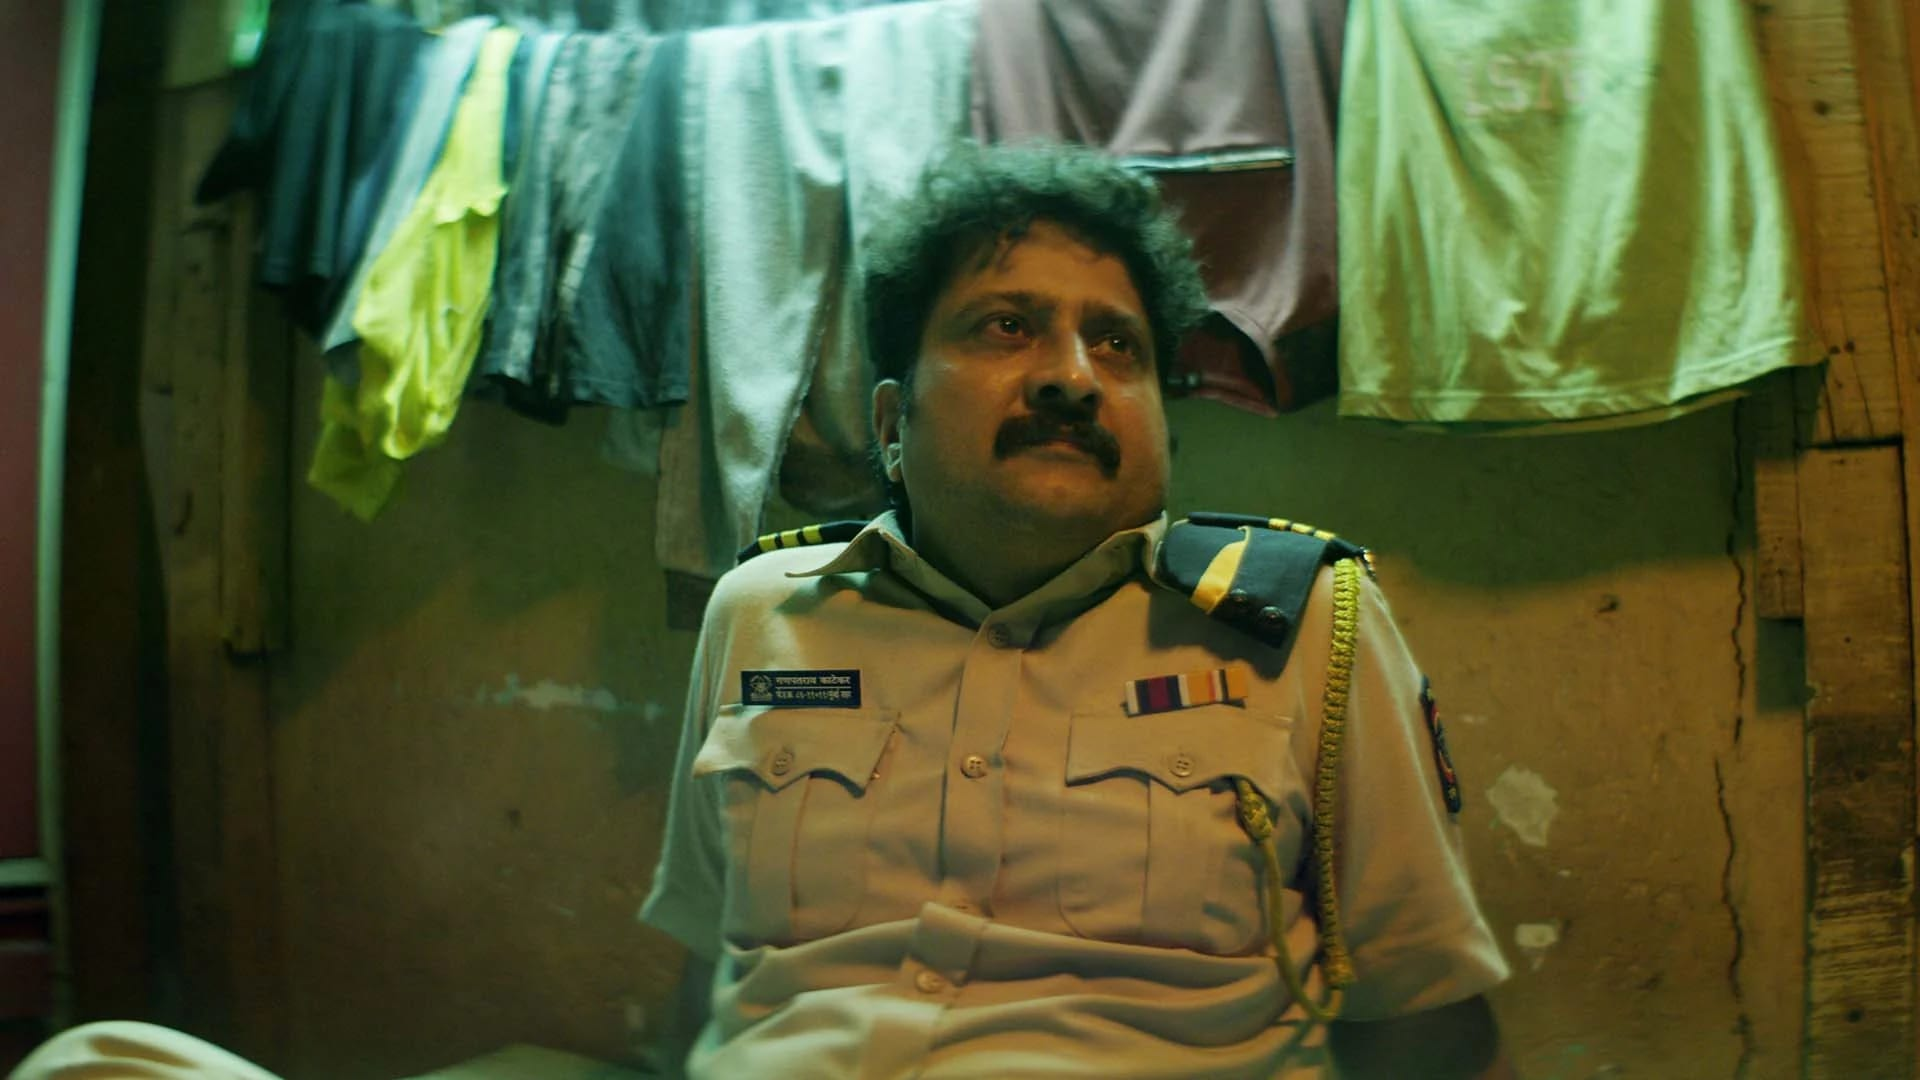 Actor Jitendra Joshi as the breakout character Constable Katekar from Season 1